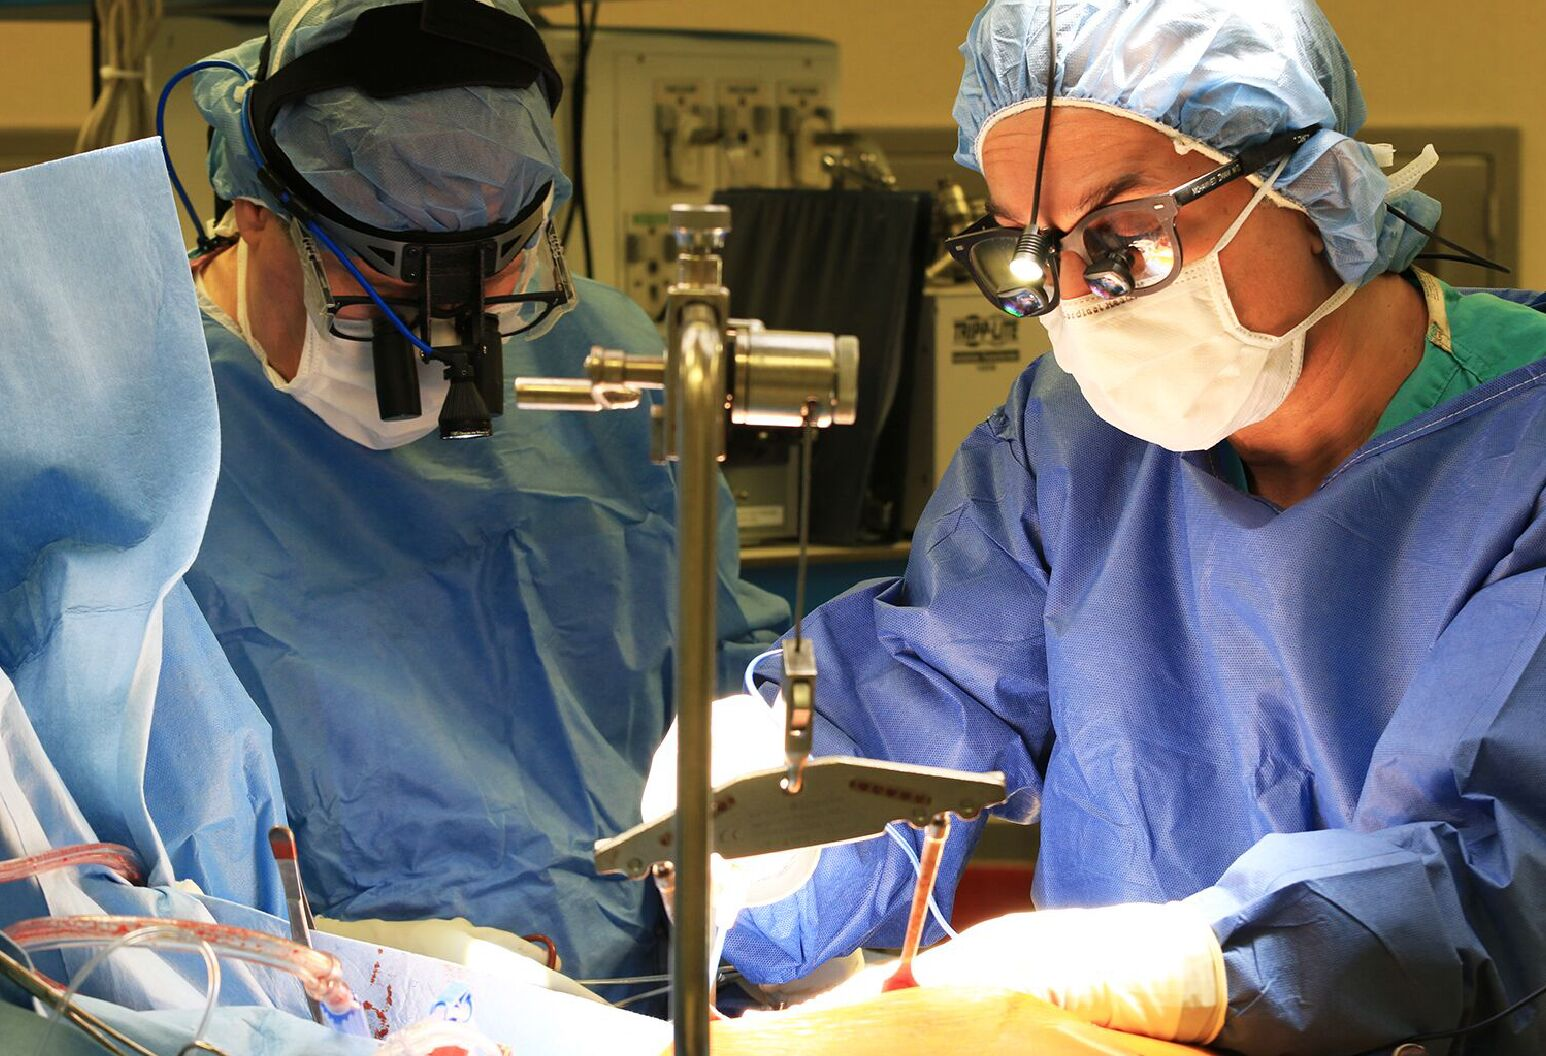 Dr. Frank Rosell (left) and Dr. Mohammed Imam perform coronary artery bypass grafting.